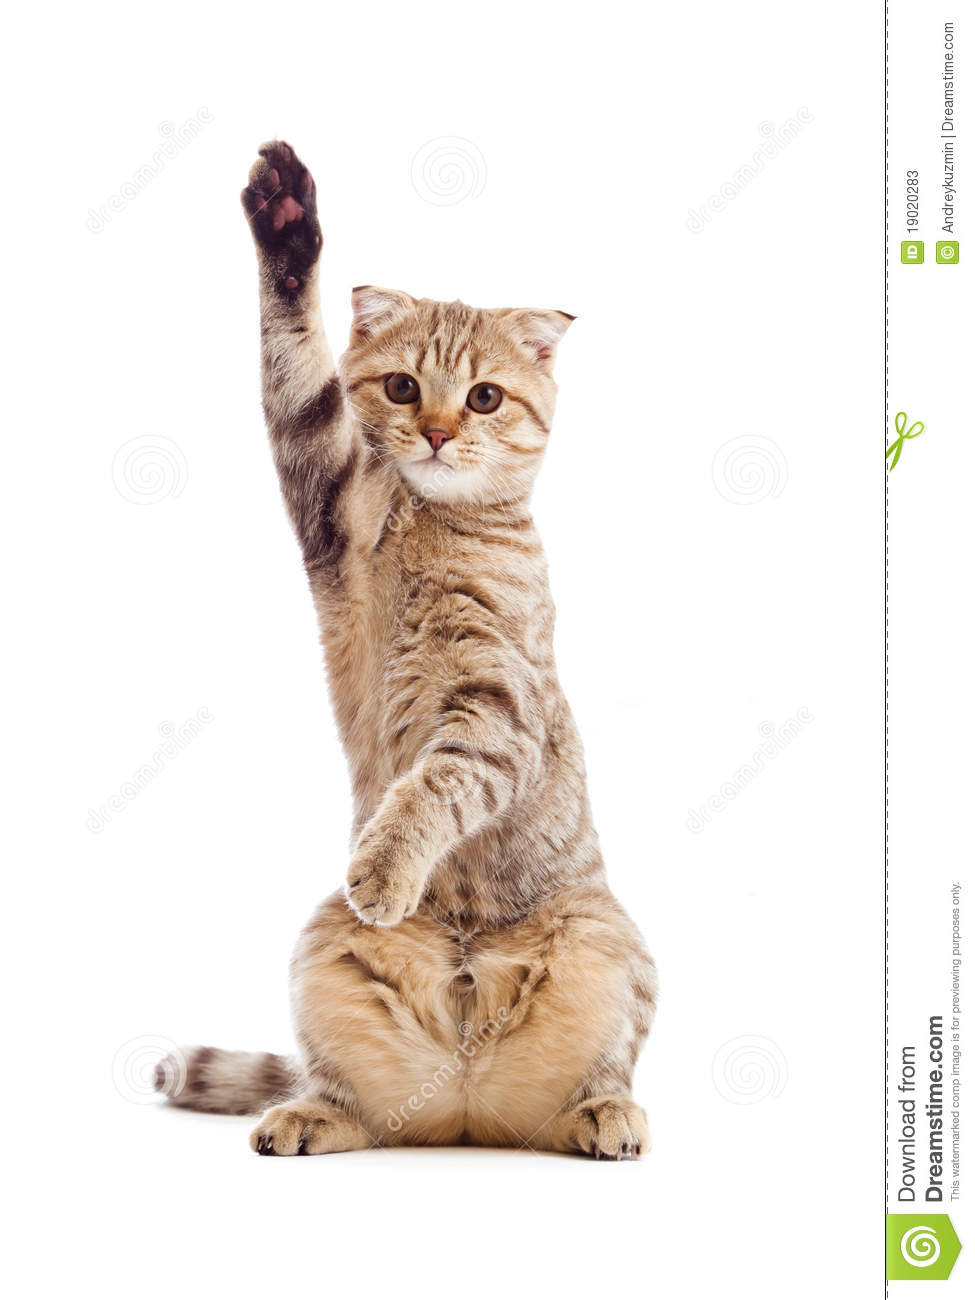 Funny Kitten Pointing Up By One Paw Isolated Stock Photos - Image ...